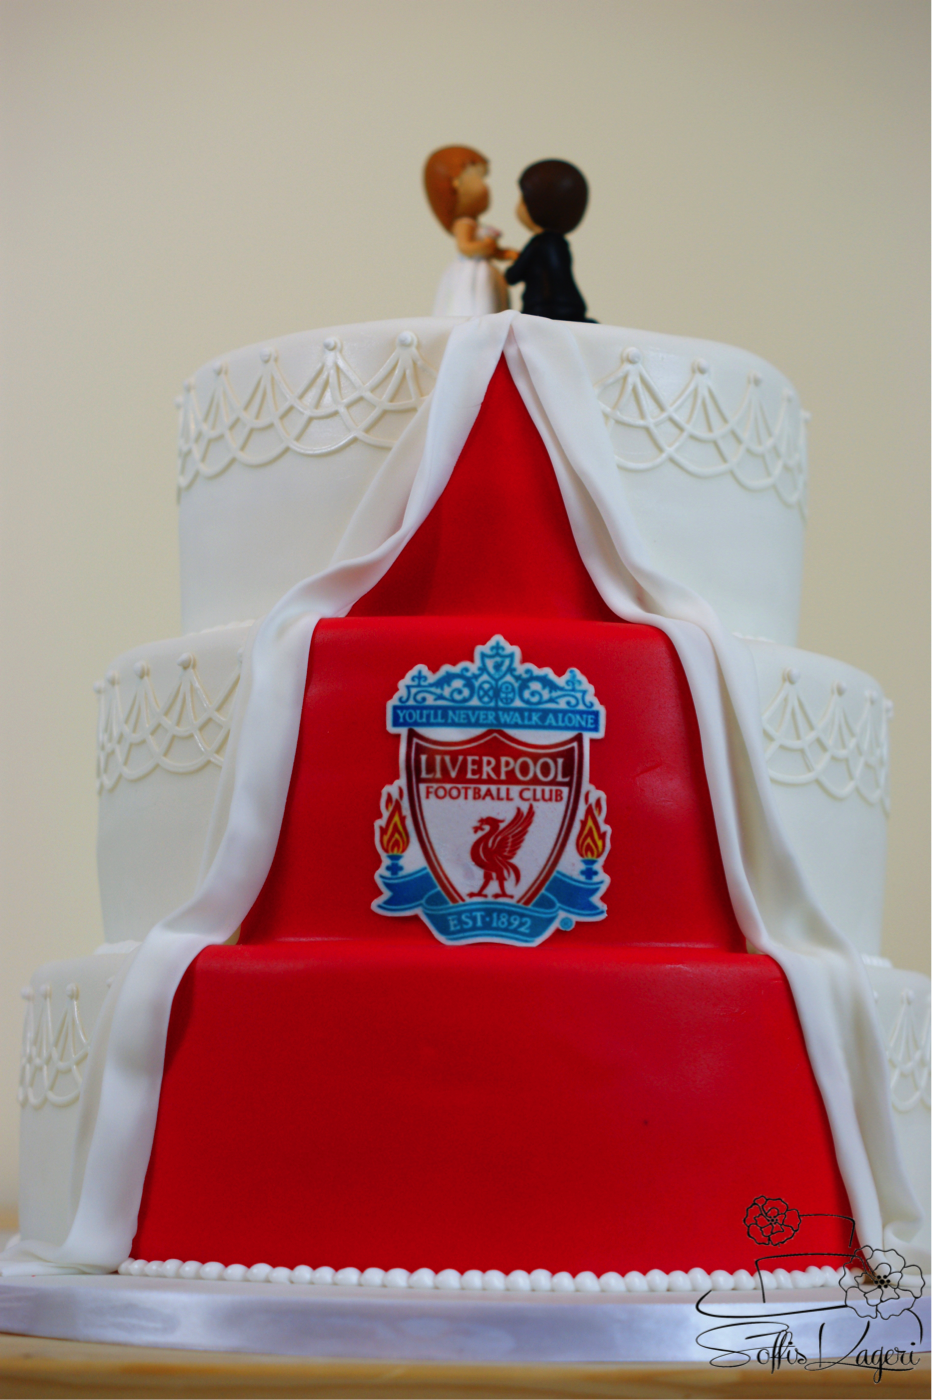 En lille overraskelse bag på bryllupskagen liverpool fans a small surprise on the back of the wedding cake liverpool fans